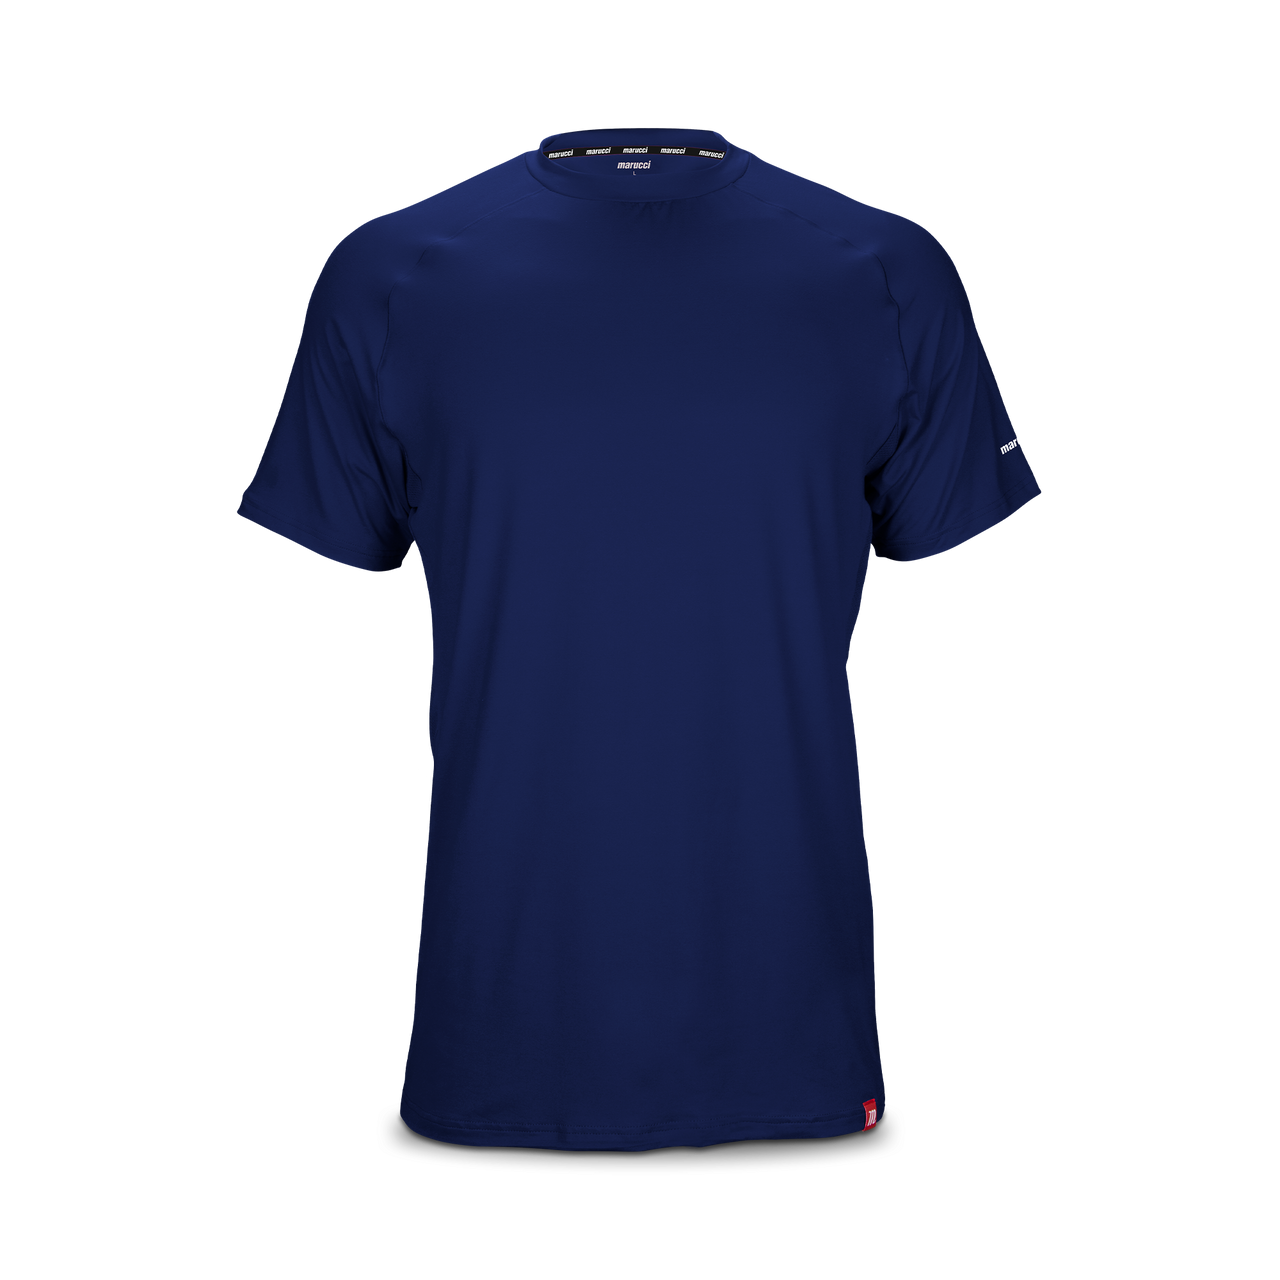 Marucci Youth Athletic Fit Performance Tee Navy Blue Medium